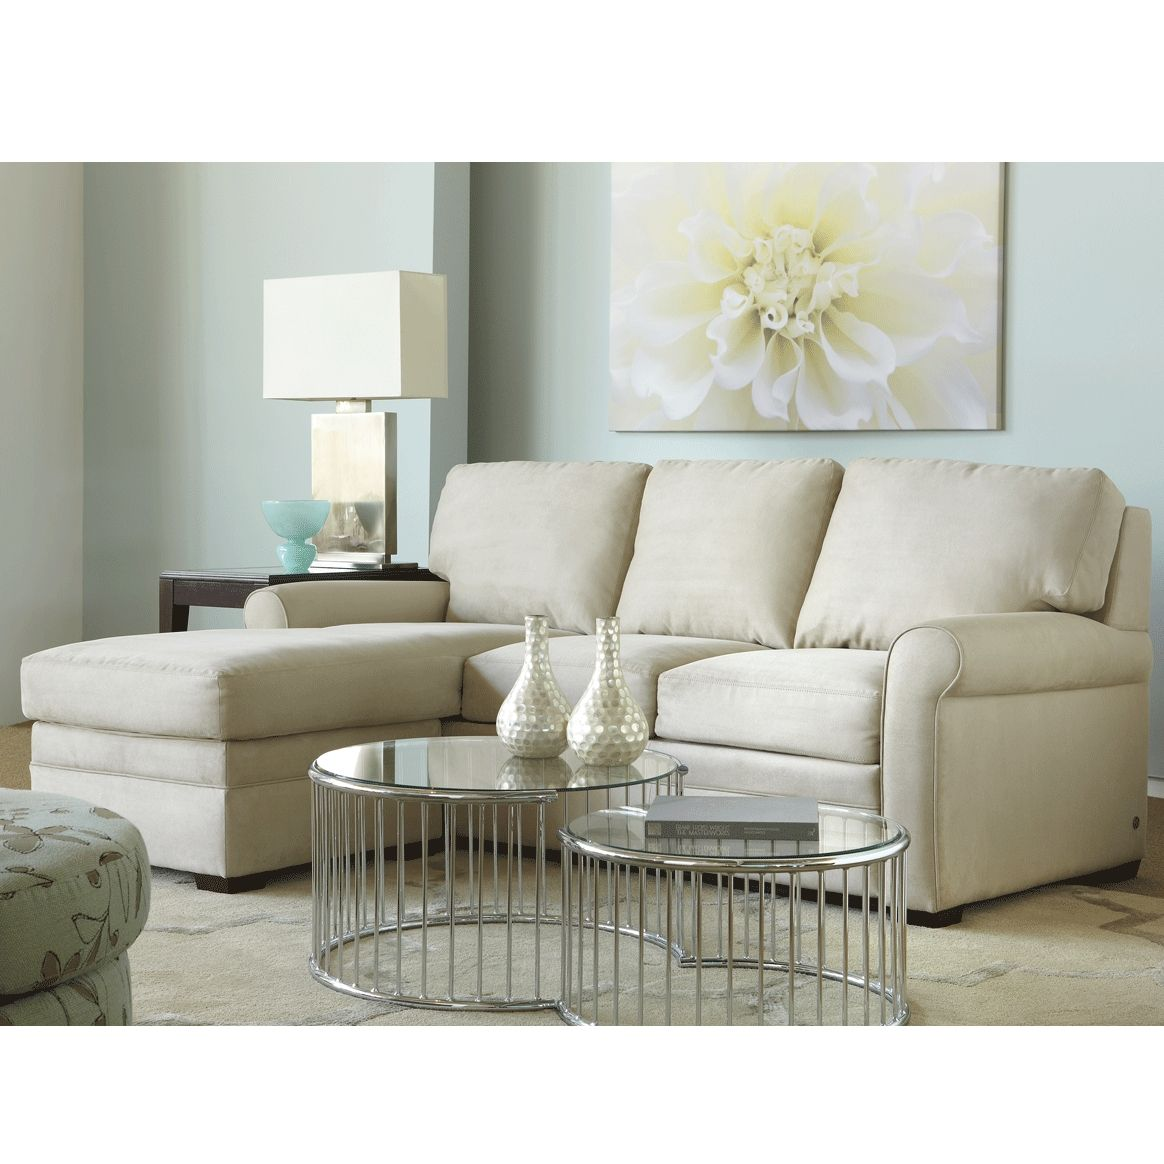 American Leather Sofa Prices  sc 1 st  Pinterest : american leather sectional prices - Sectionals, Sofas & Couches